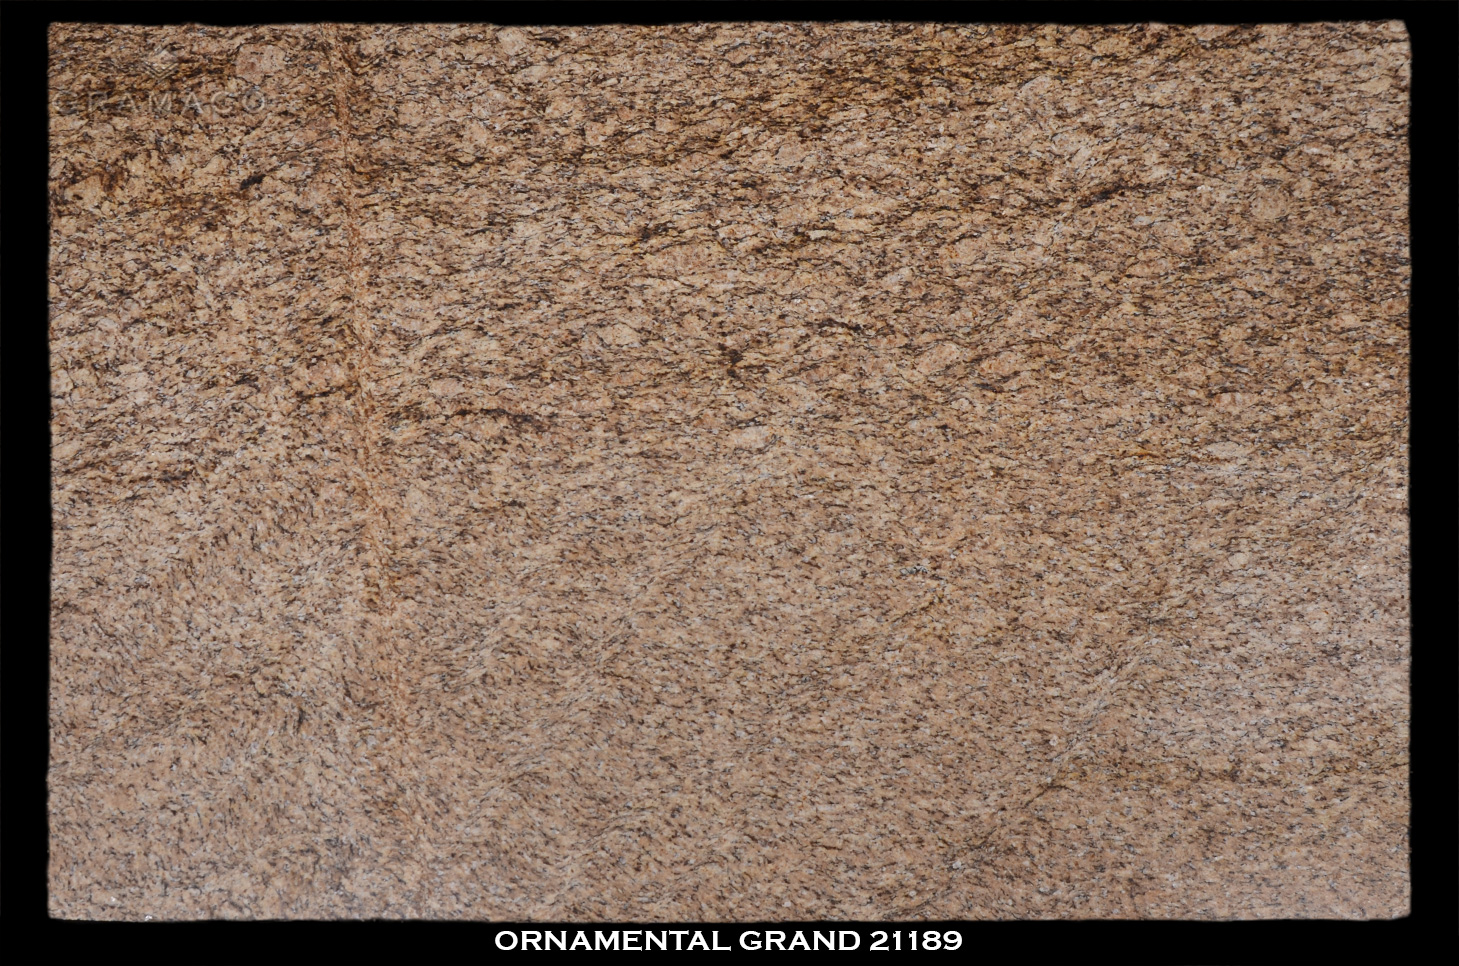 Ornamental-Grand-21189-slab